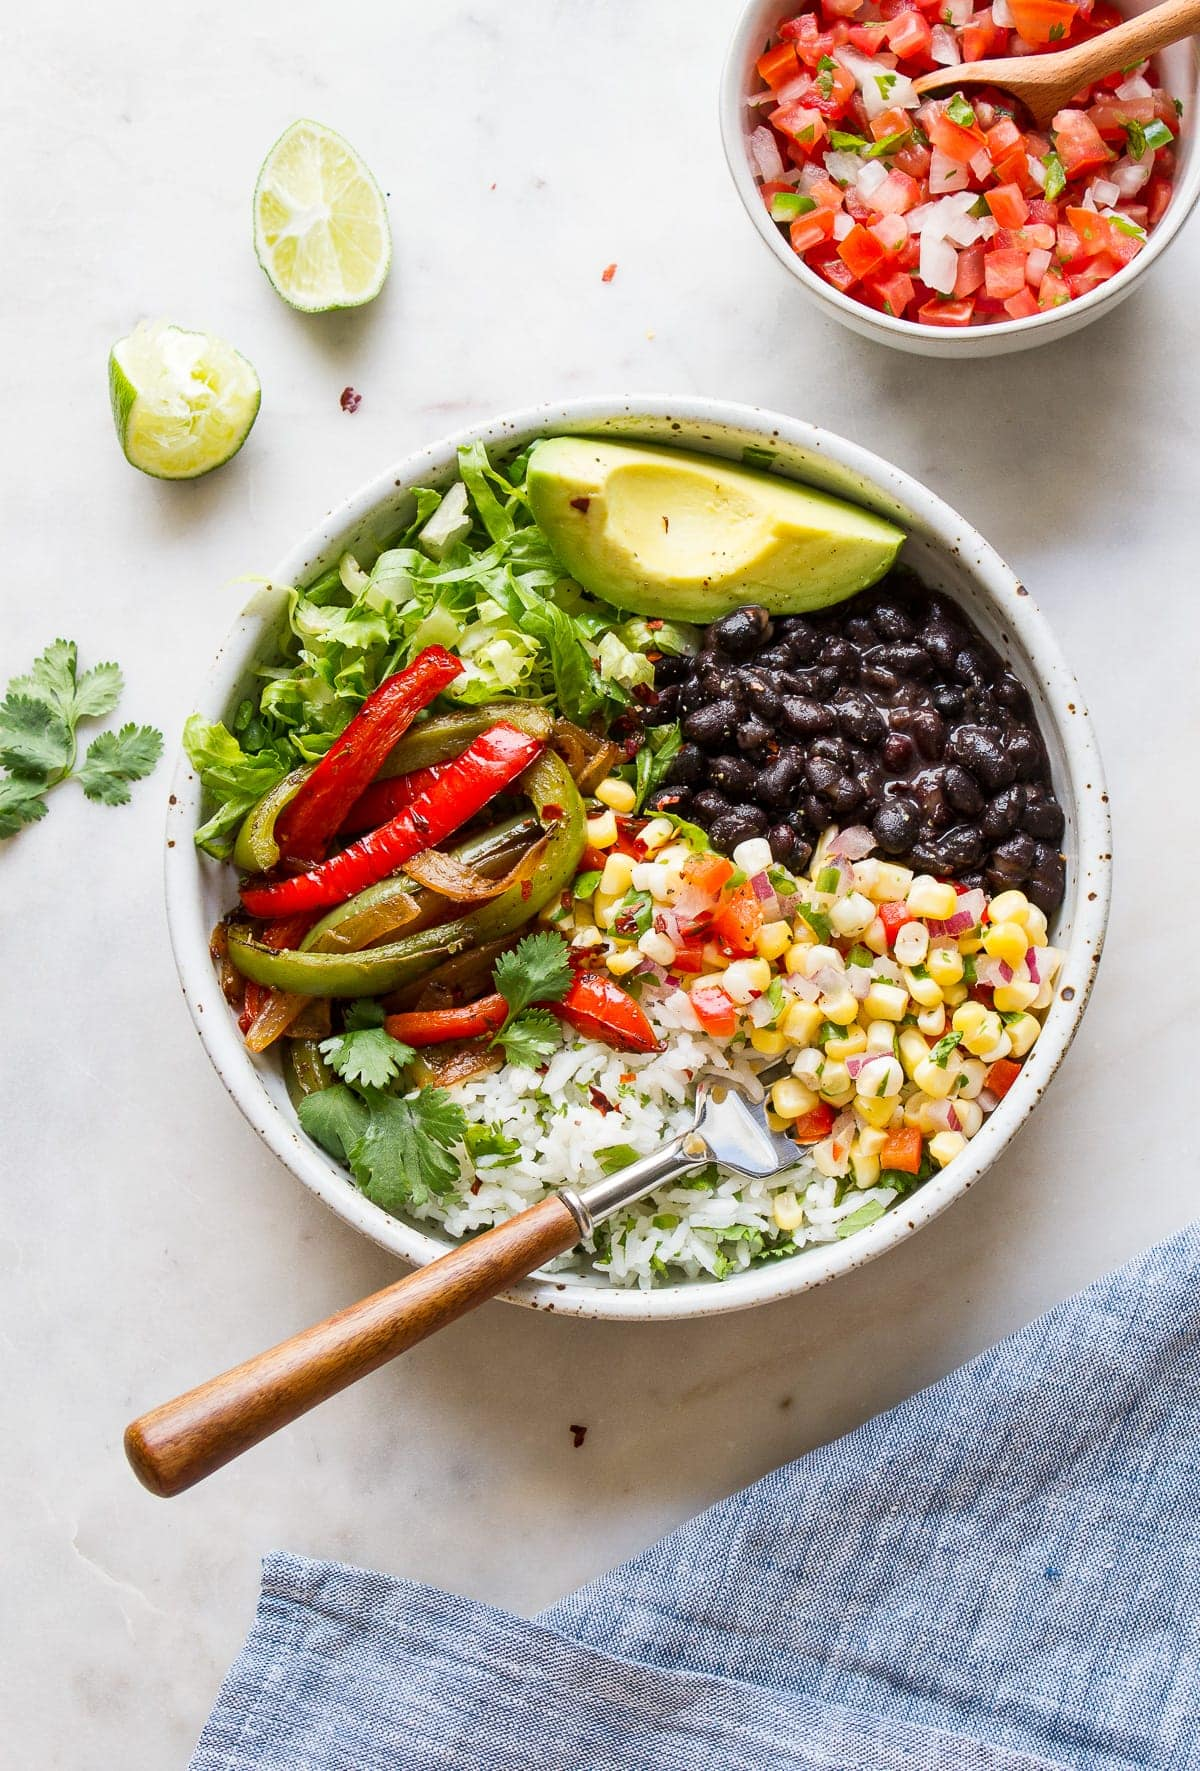 Vegan Burrito Bowl Chipotle Inspired The Simple Veganista